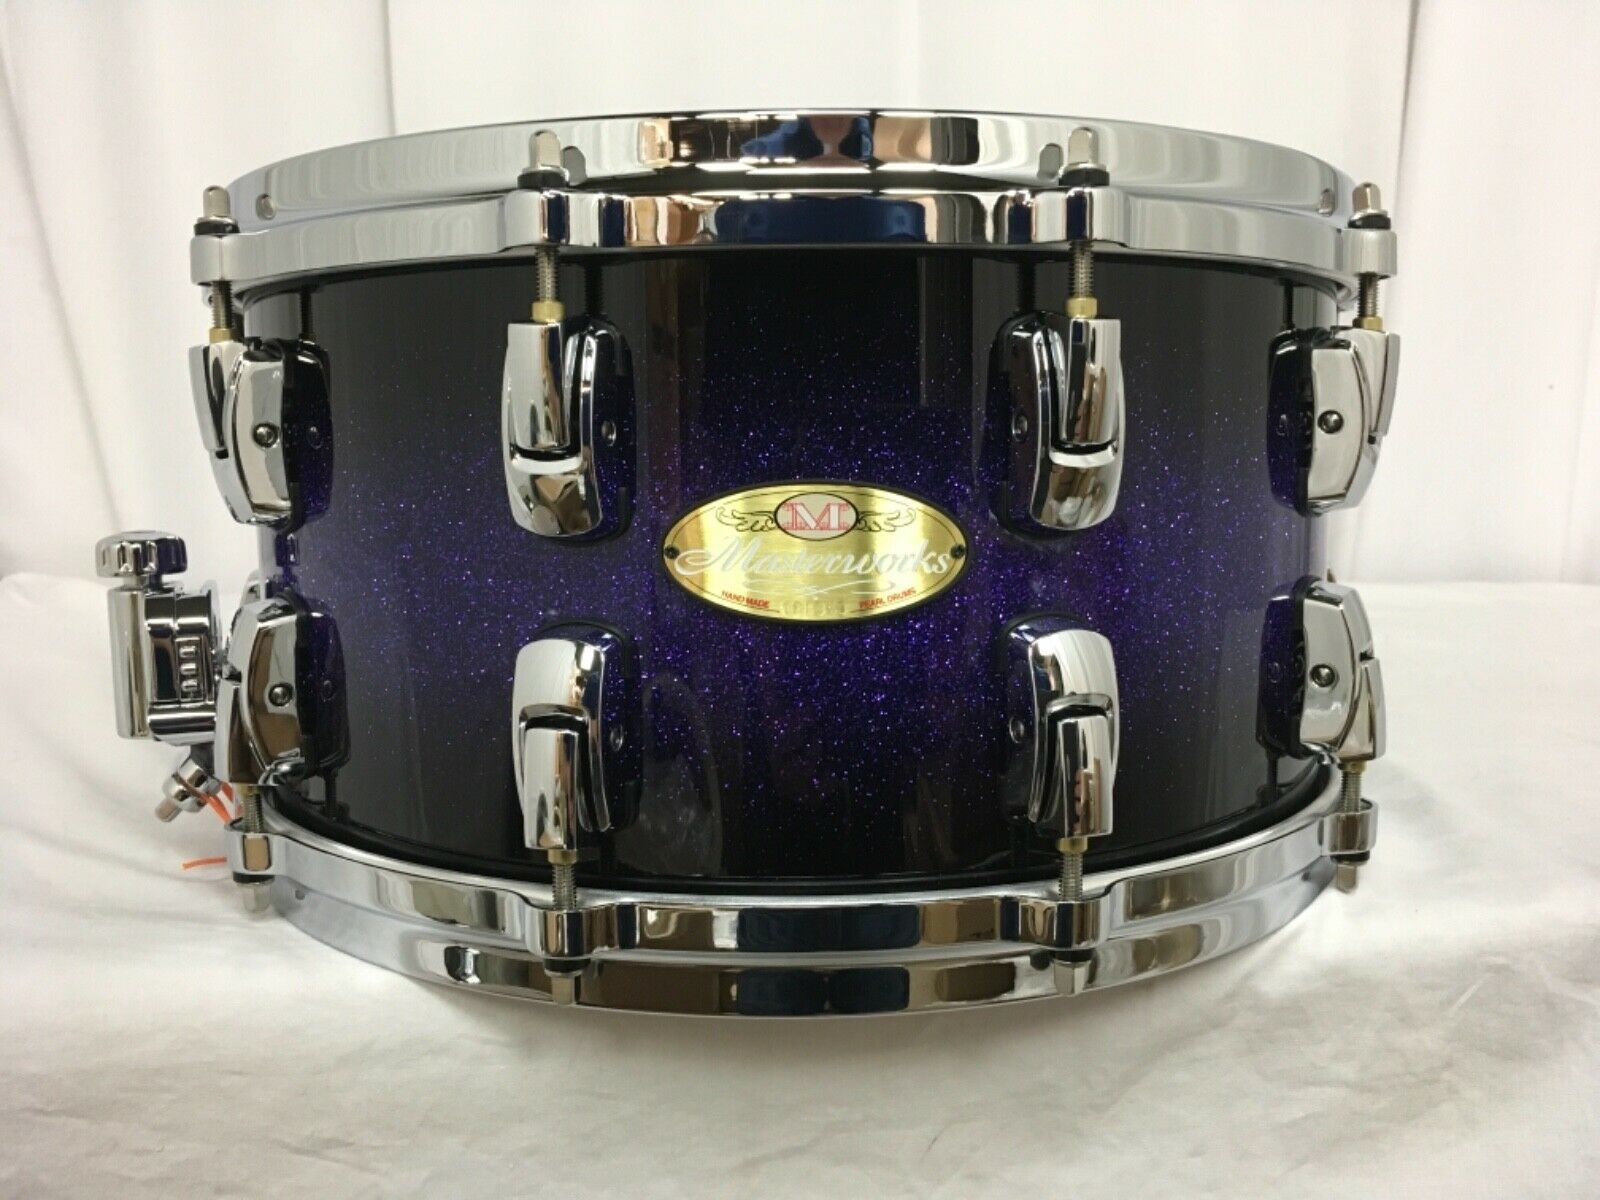 Pearl Masterworks 14  X 7  Snare Drum 20 Ply Maple-Birch Shell lila Craze ll